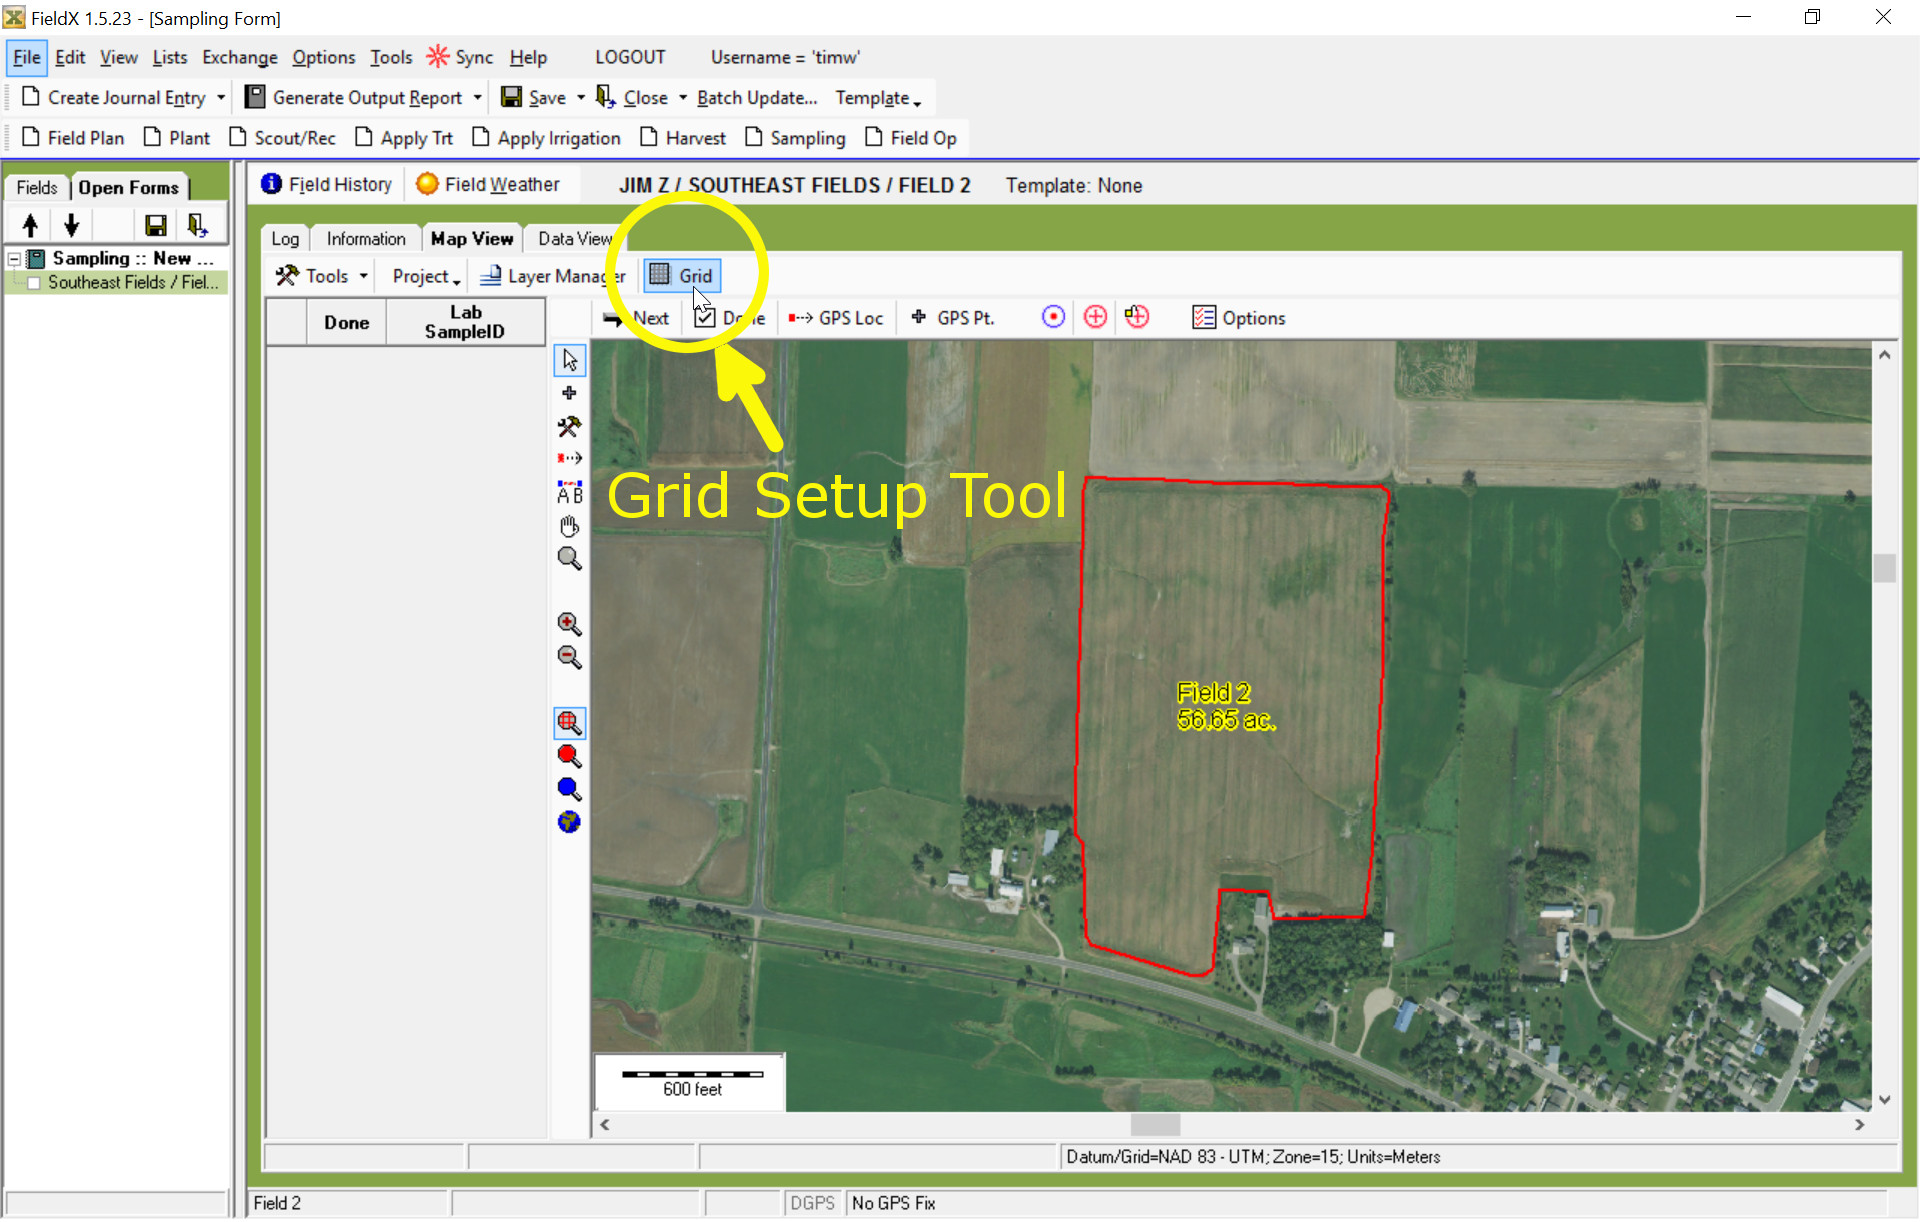 Selecting Grid Tool in Sampling Entry